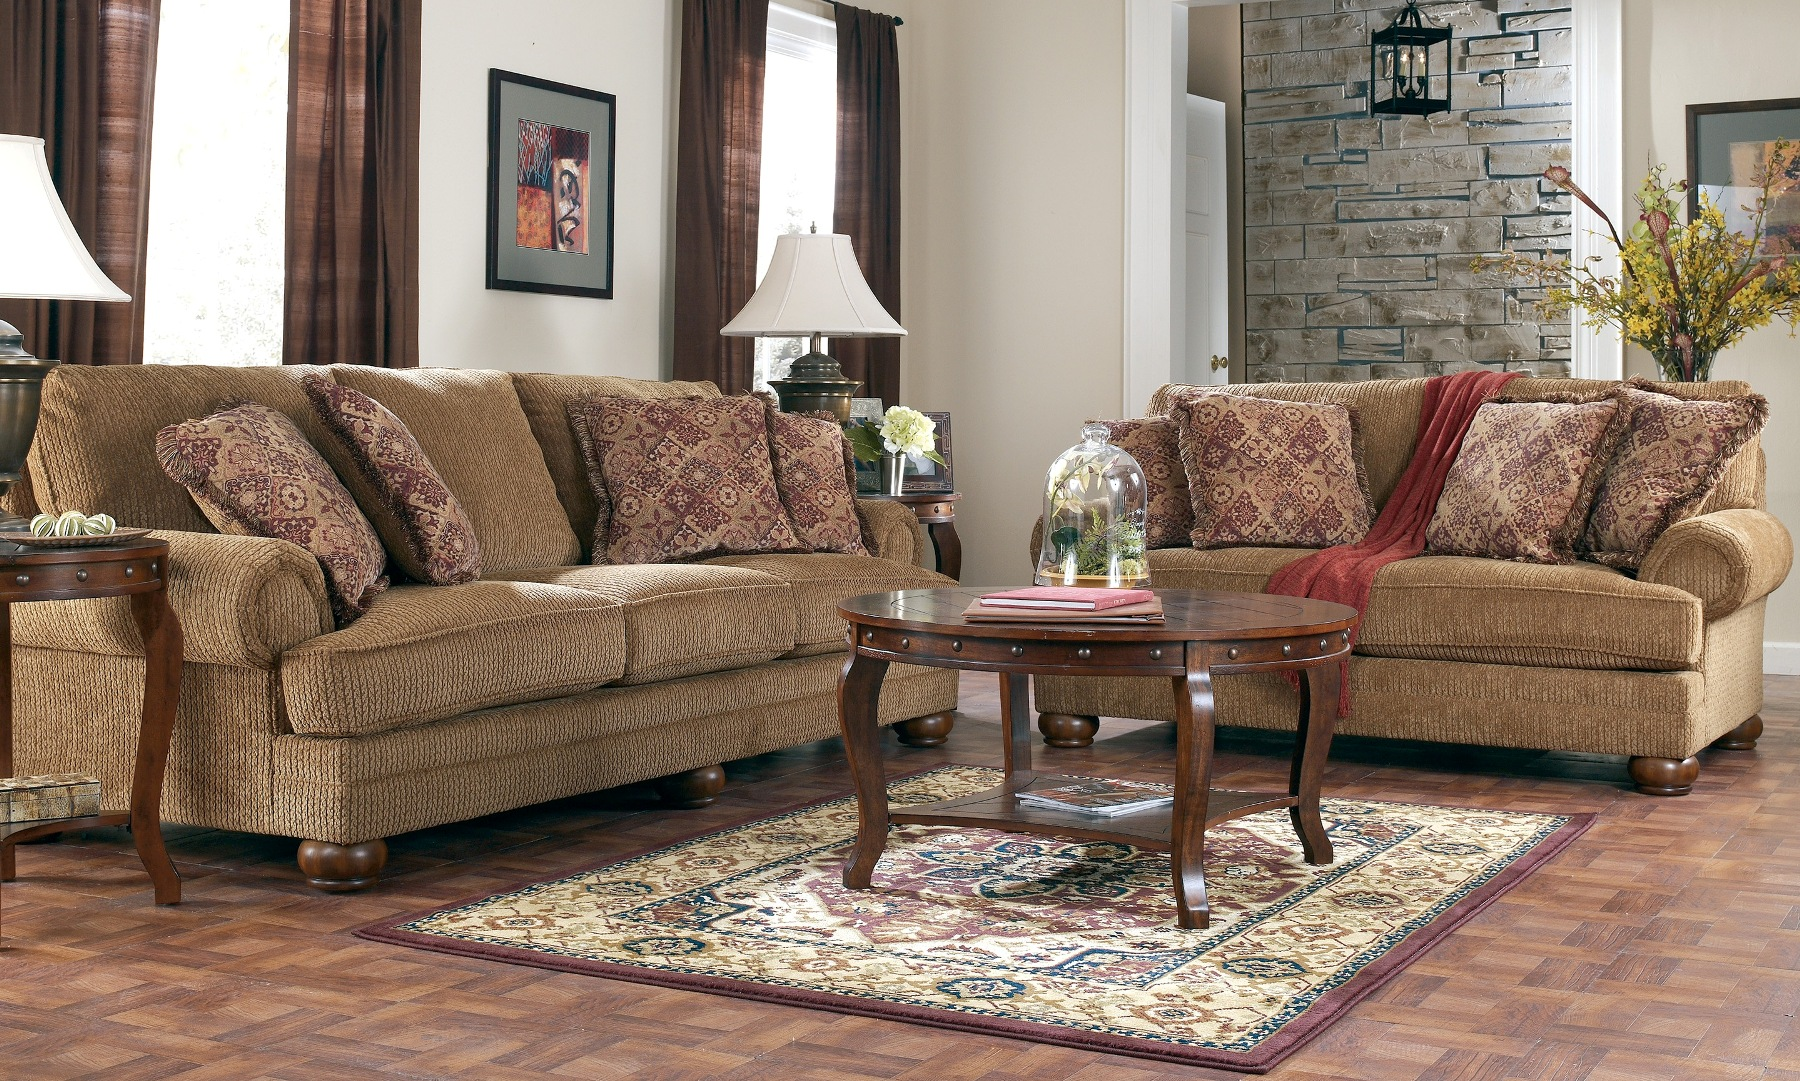 best front room furnishings for living room ideas with front room furnishings outlet - Living Room Furnishings